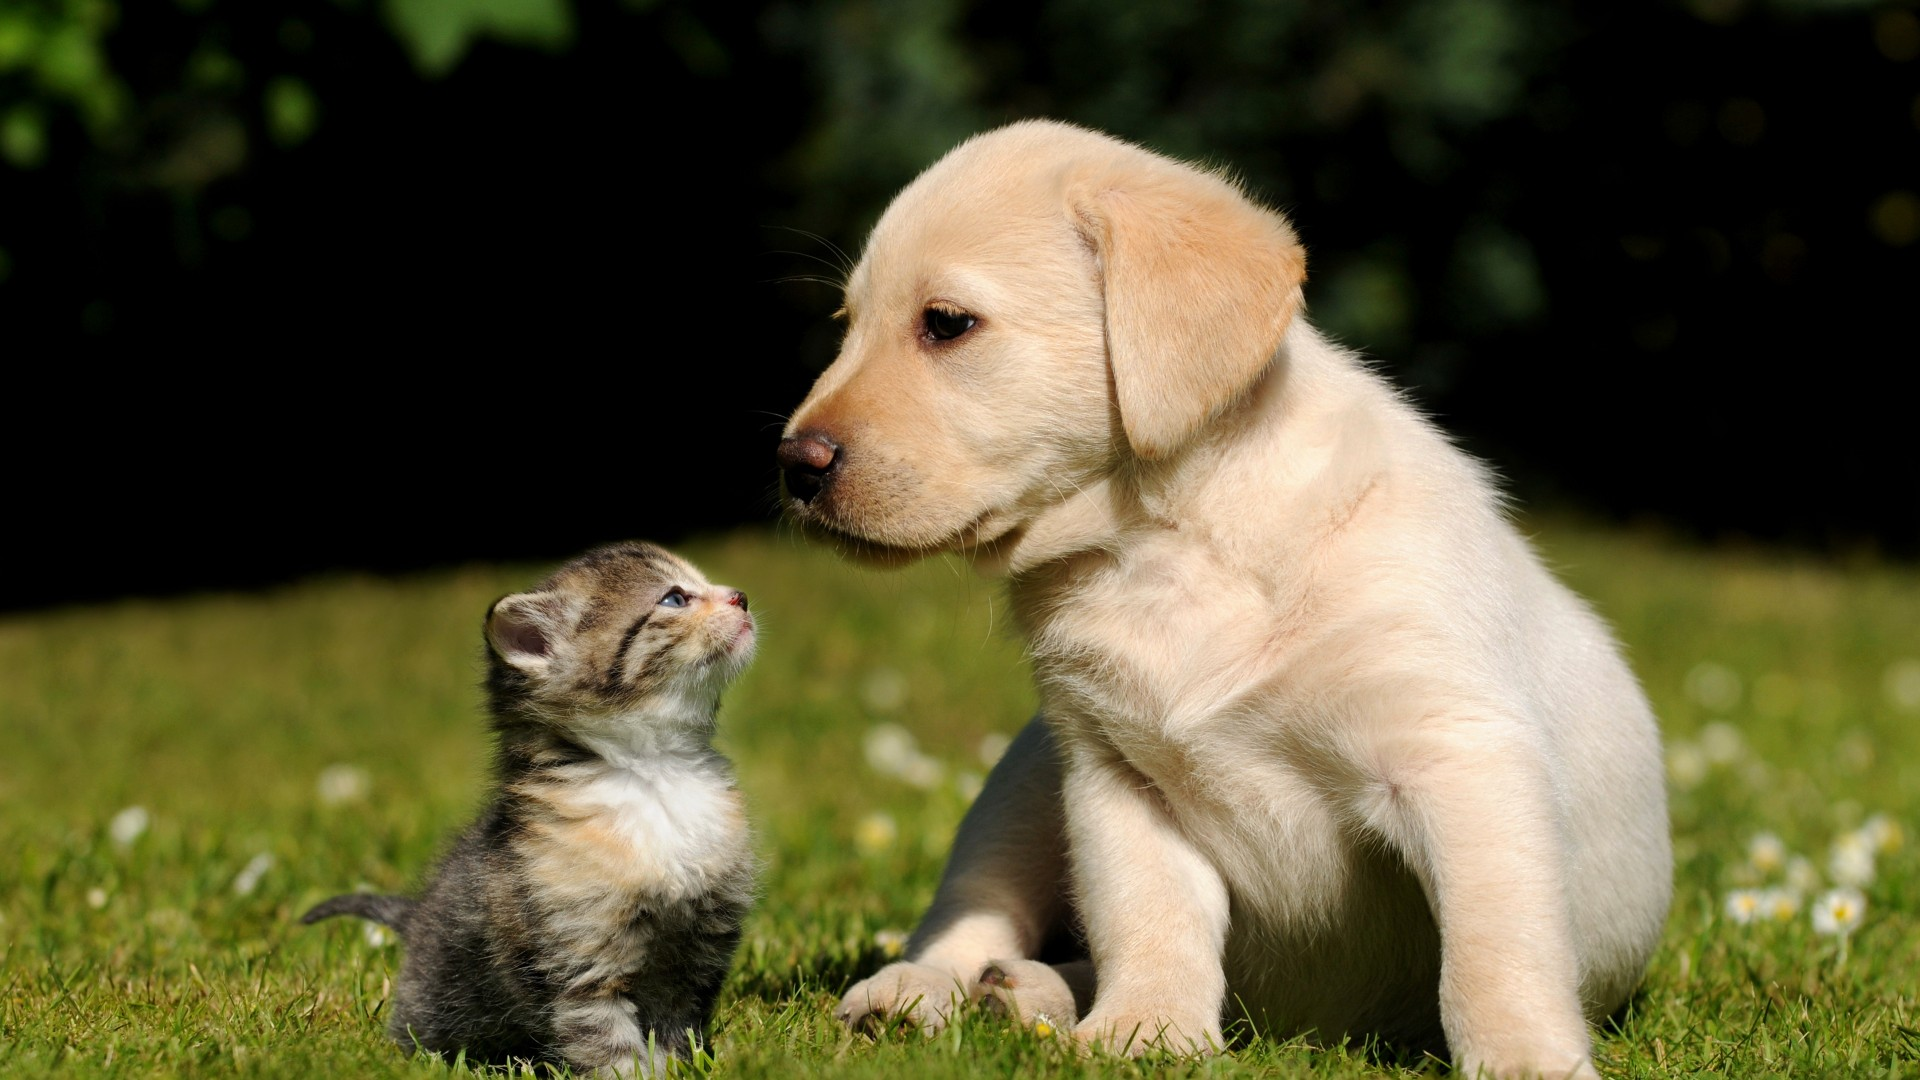 Friends, cat, dog, puppy, kitty, green, grass, sunny day, cute, pet (horizontal)